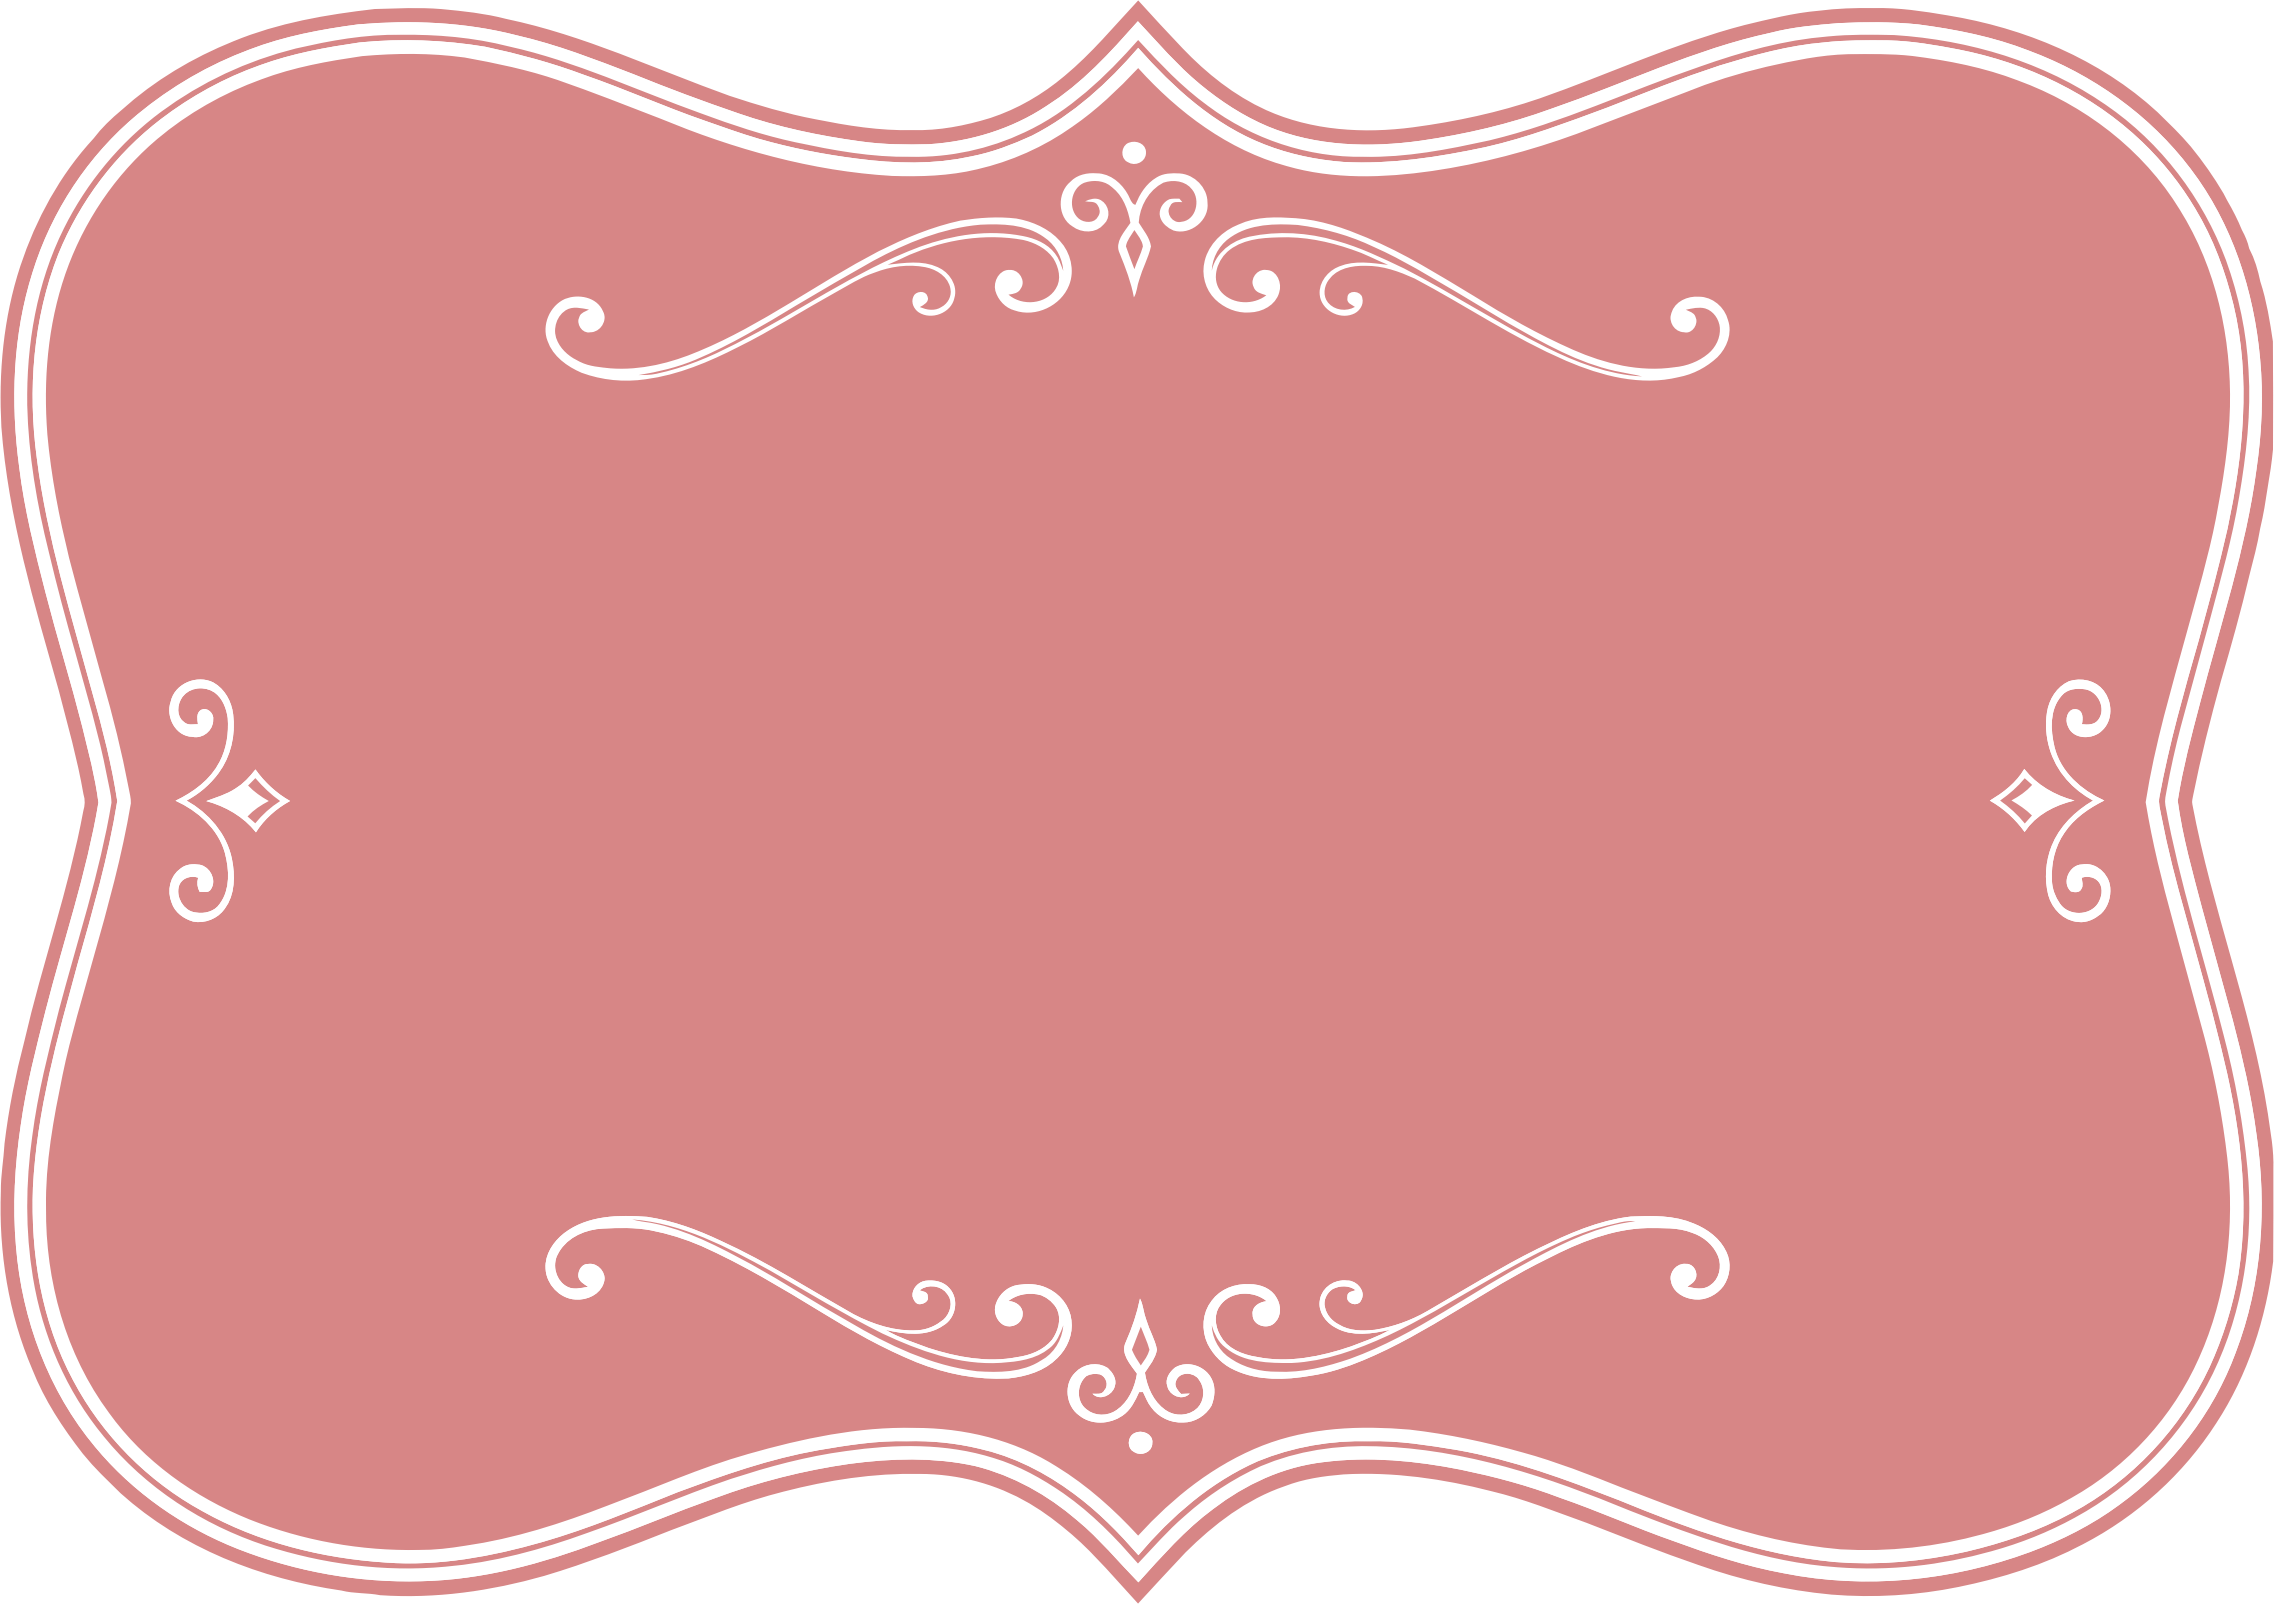 Etiquetas vintage vector rosa png. Pin by jeny chique